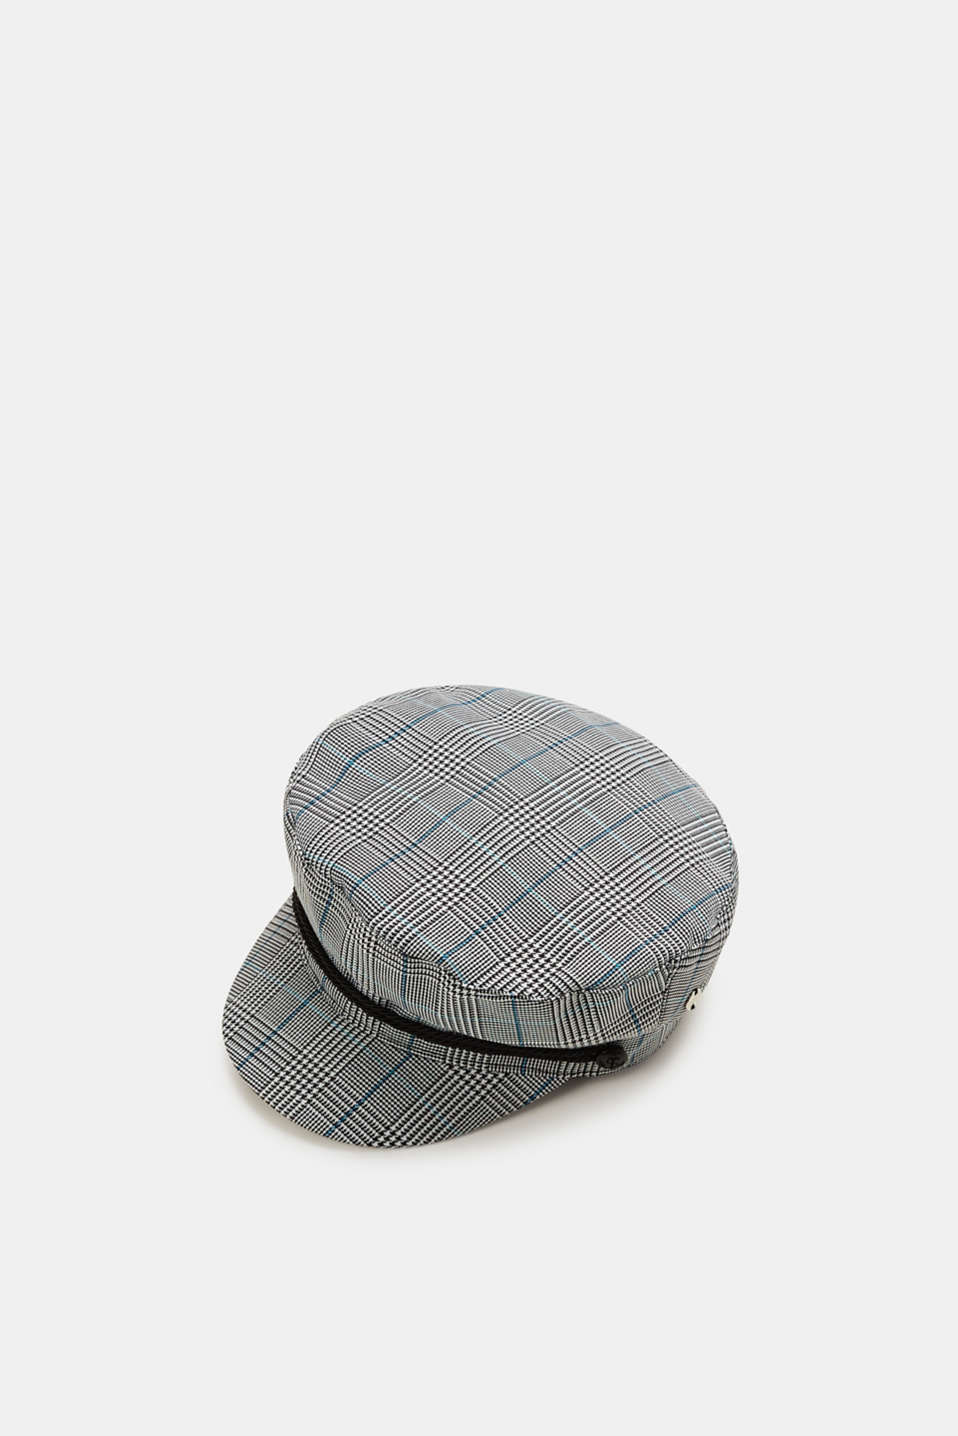 Esprit - Baseball cap with a Prince of Wales check pattern